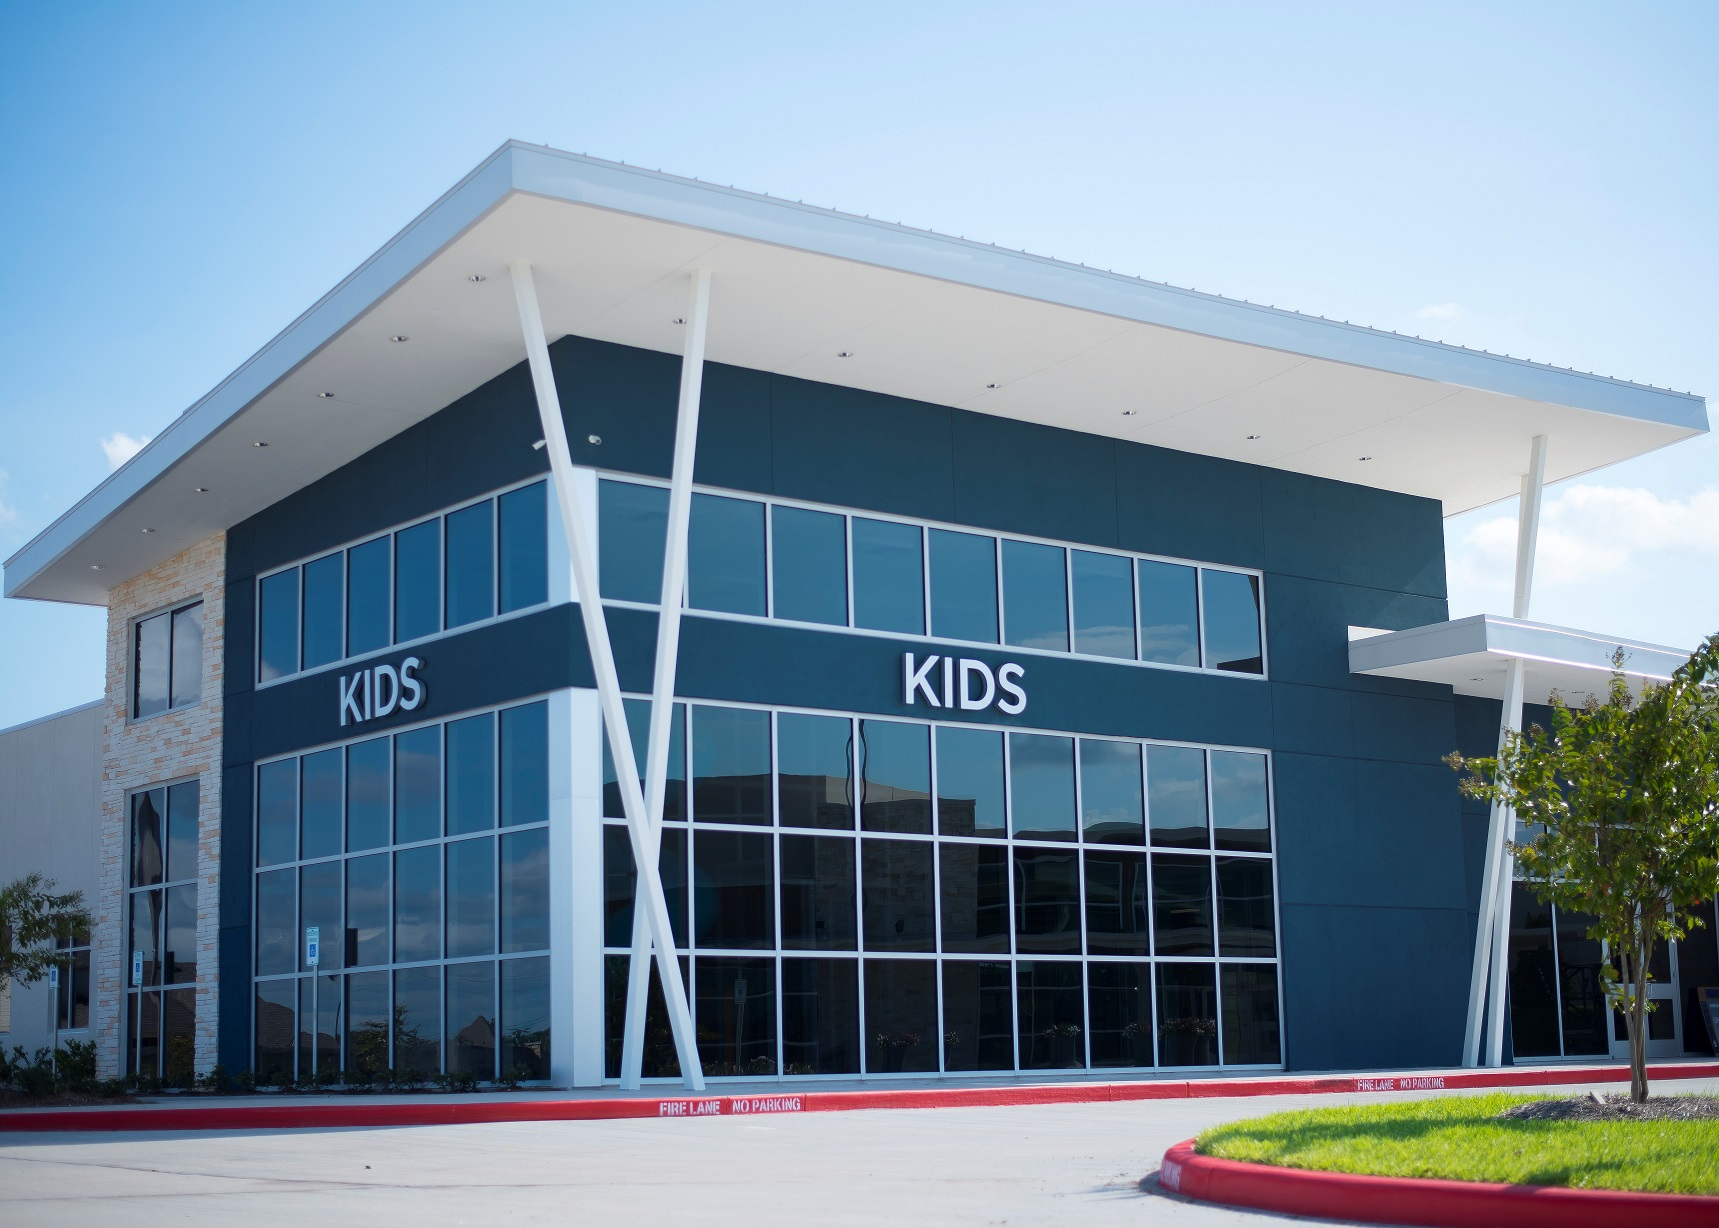 Next Generation Academy Campus in Pearland, Texas